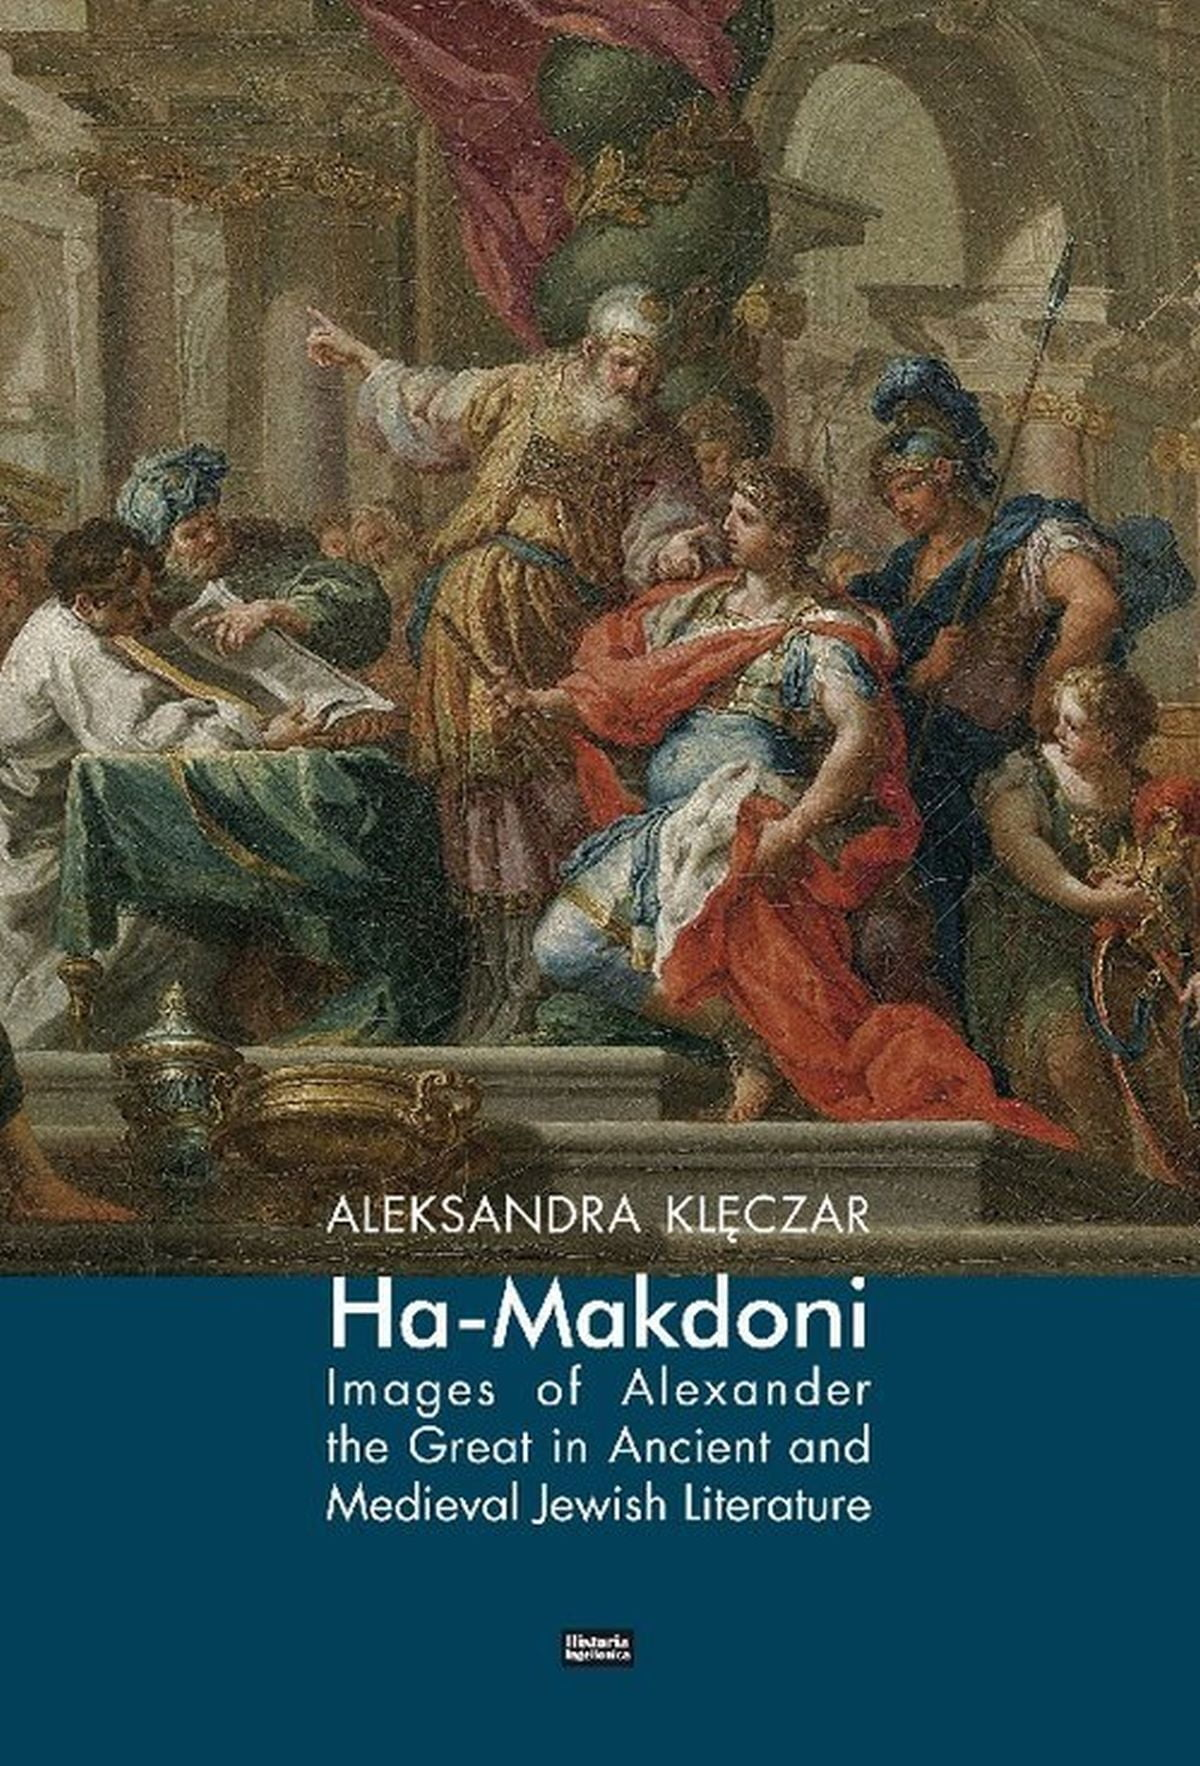 Ha-Makedoni Images of Alexander the Great in Ancient and Medieval Jewish Literature